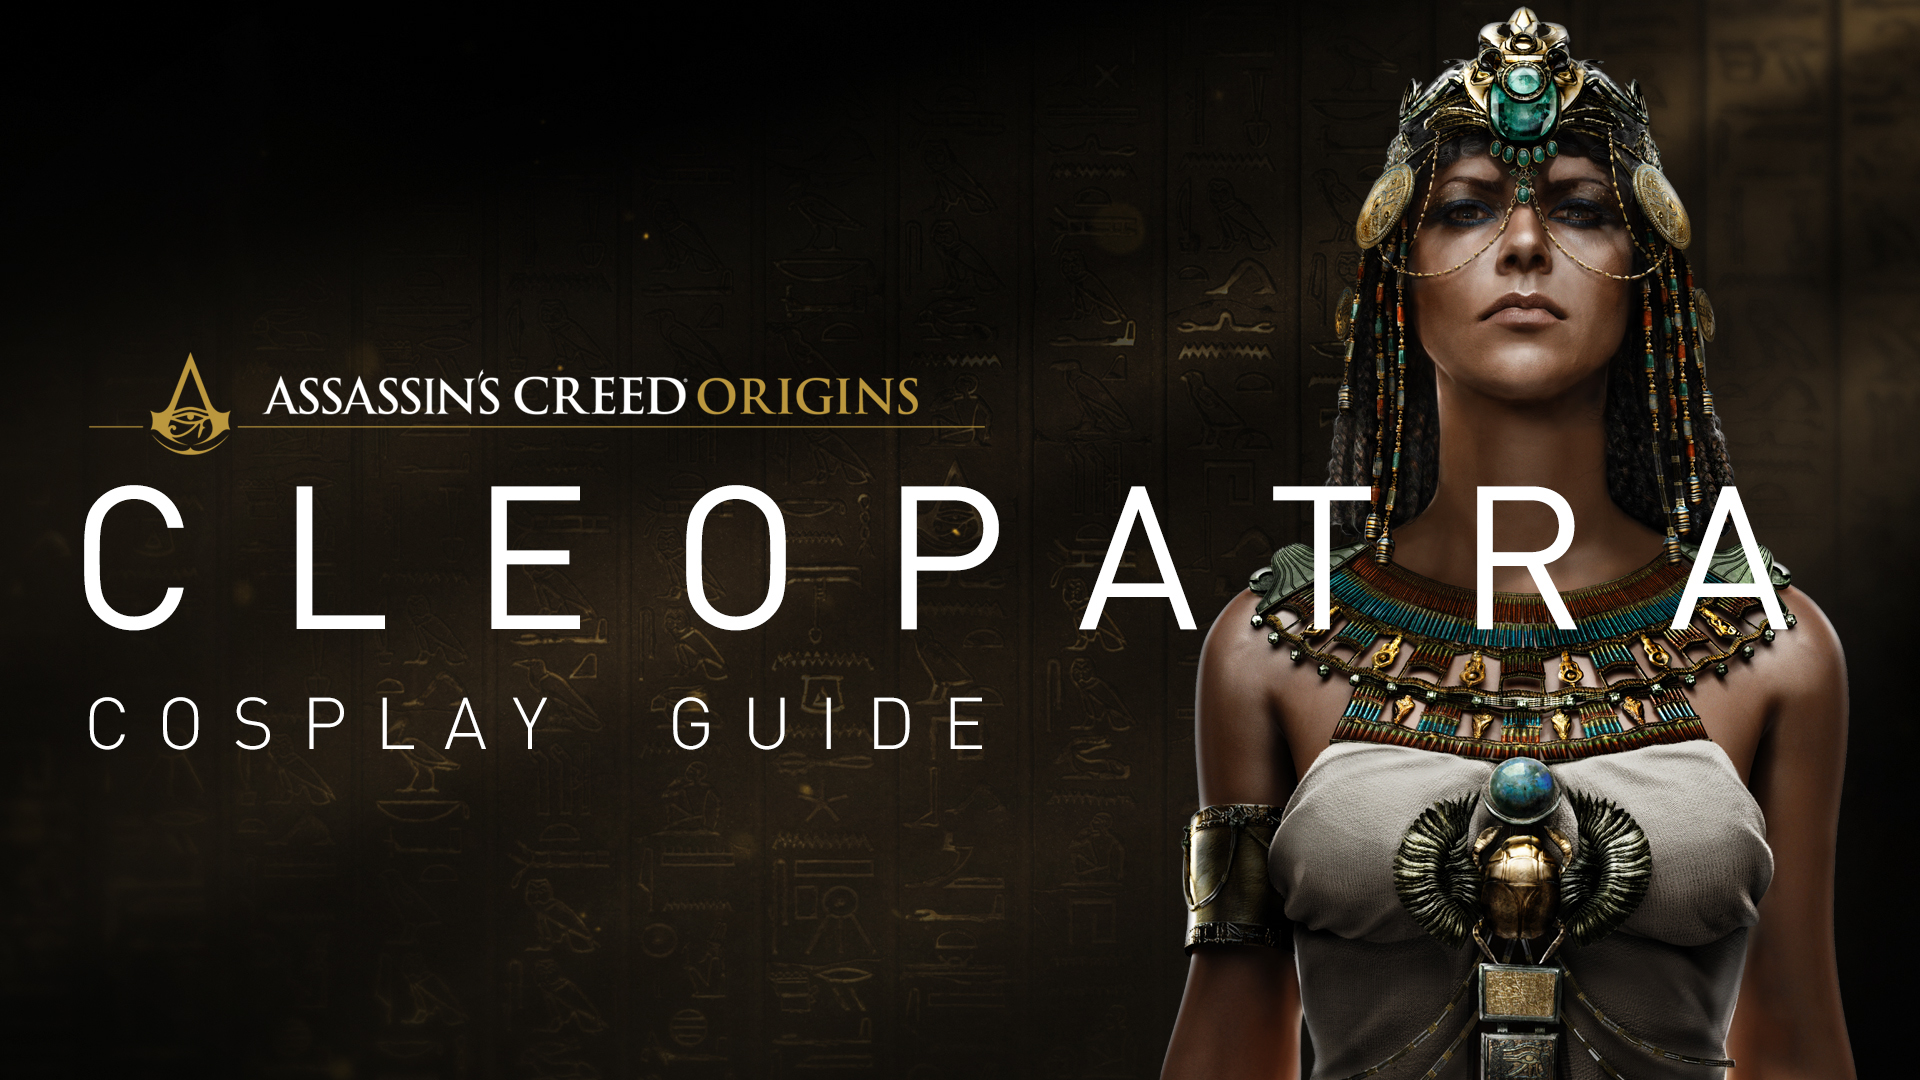 Assassin's Creed Origins – Cleopatra Cosplay Guide